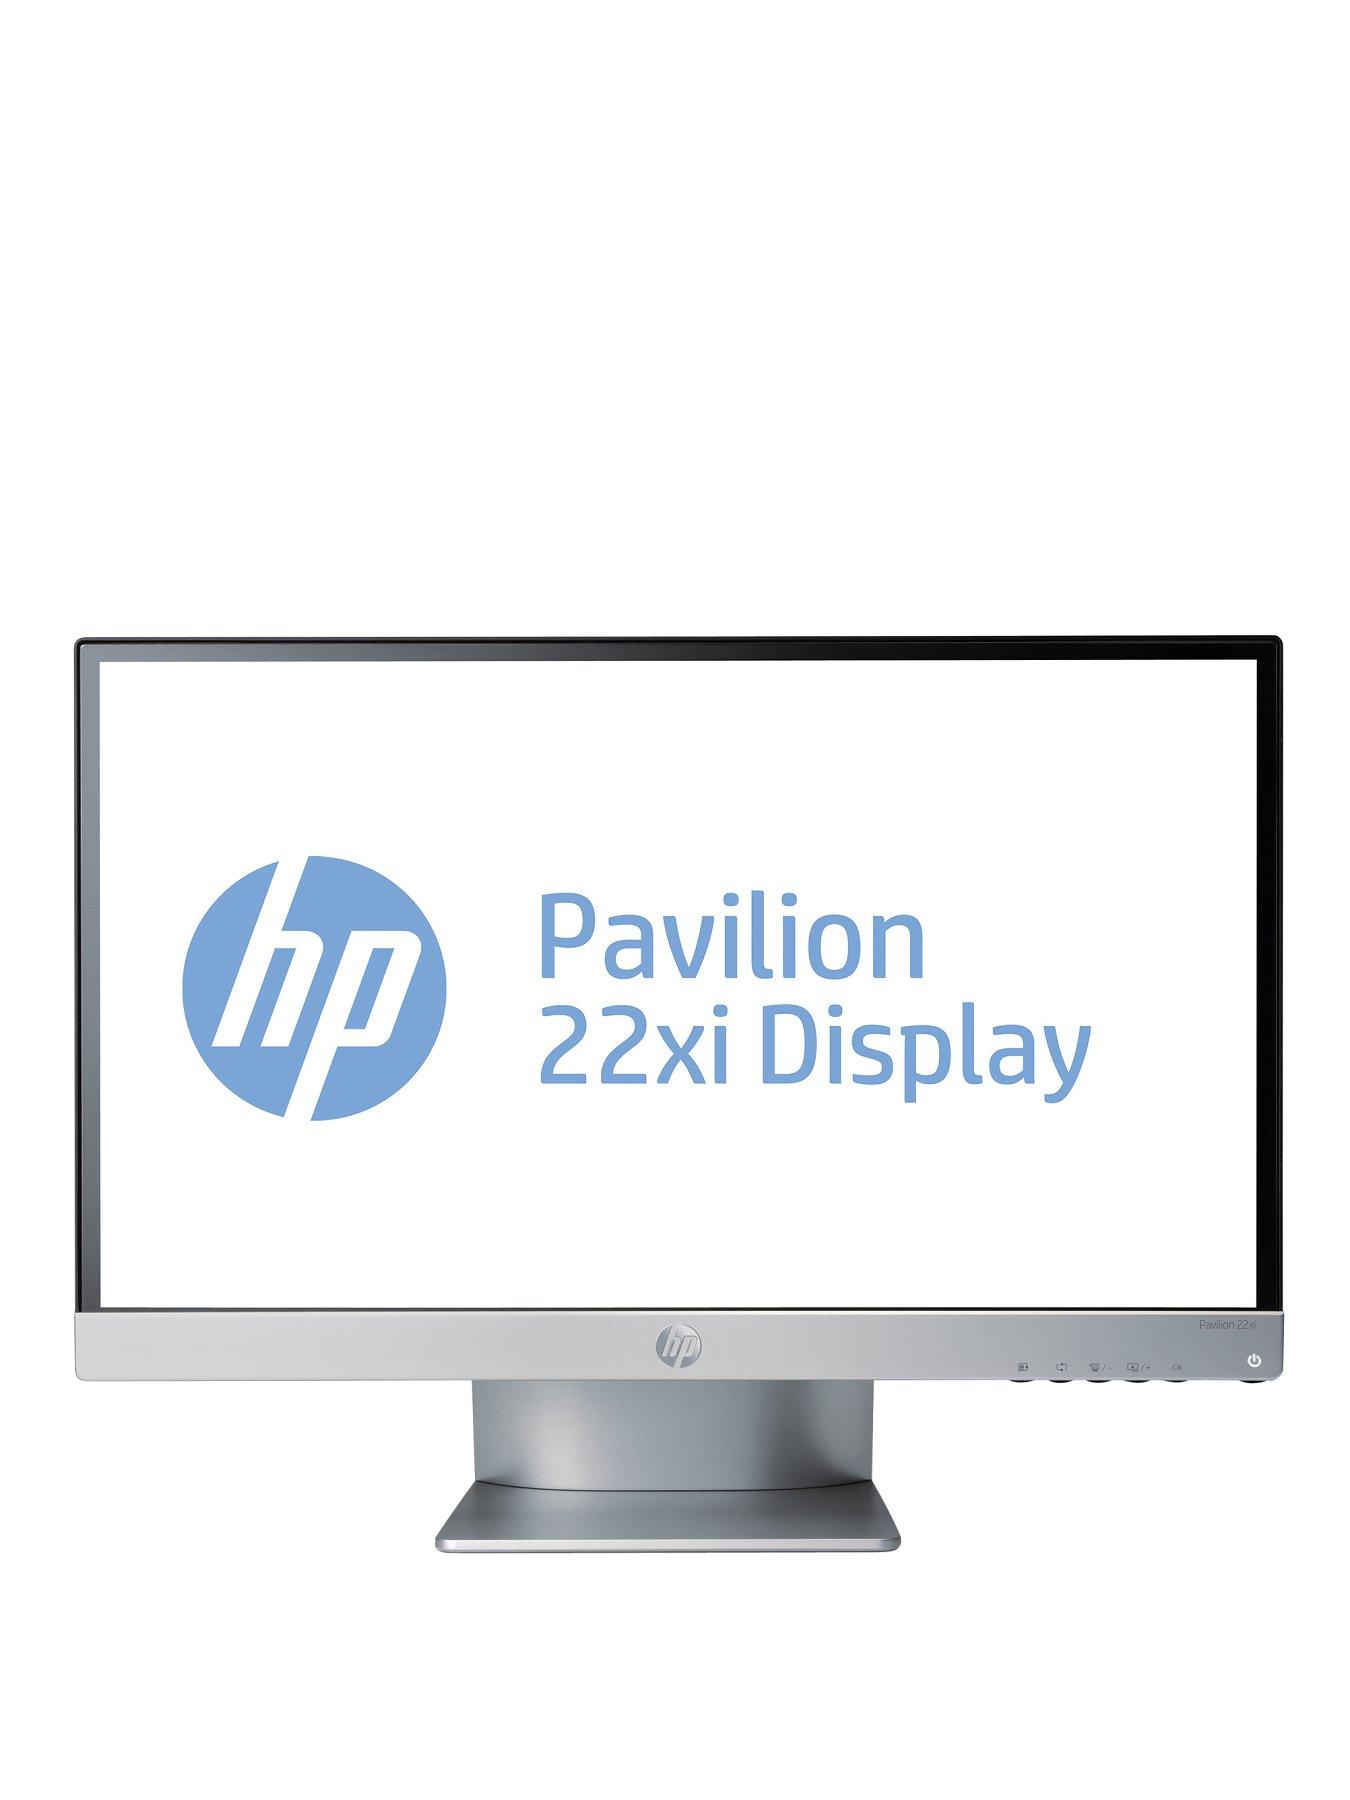 Pavilion 22xi 21.5 inch Diagonal IPS LED Backlit PC Monitor